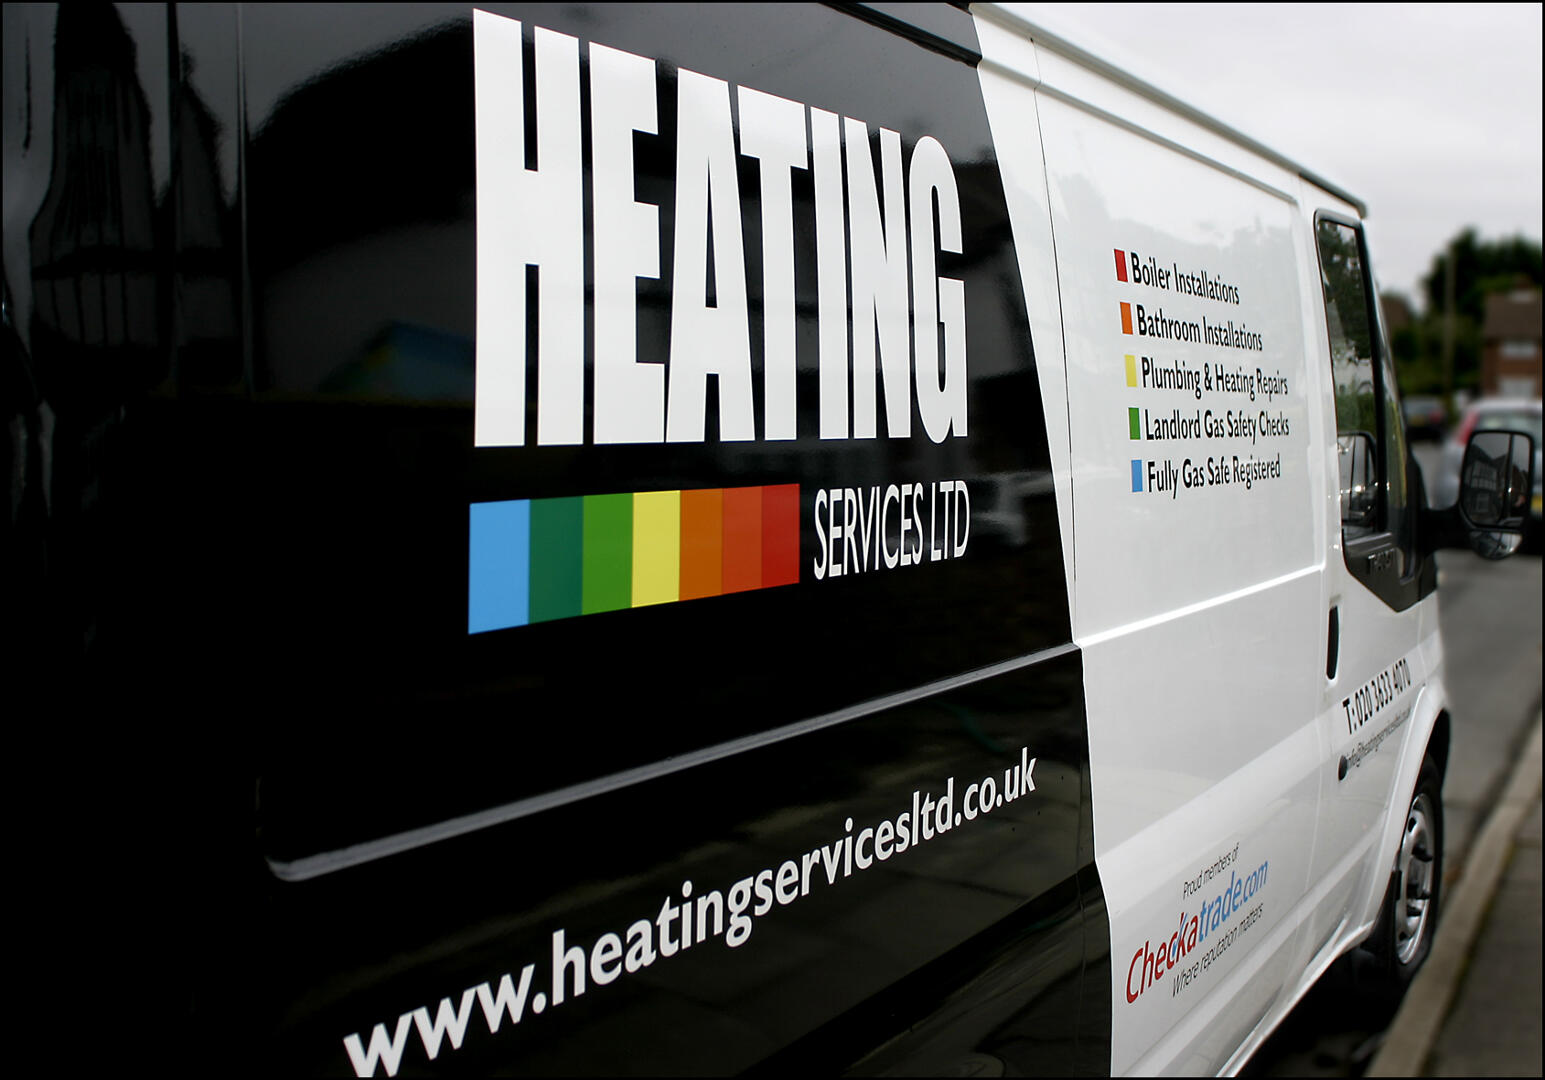 Plumbers Boiler Installation Service and Repairs and Bathroom Design and Installation by Heating Services Ltd in Beckenham (1)